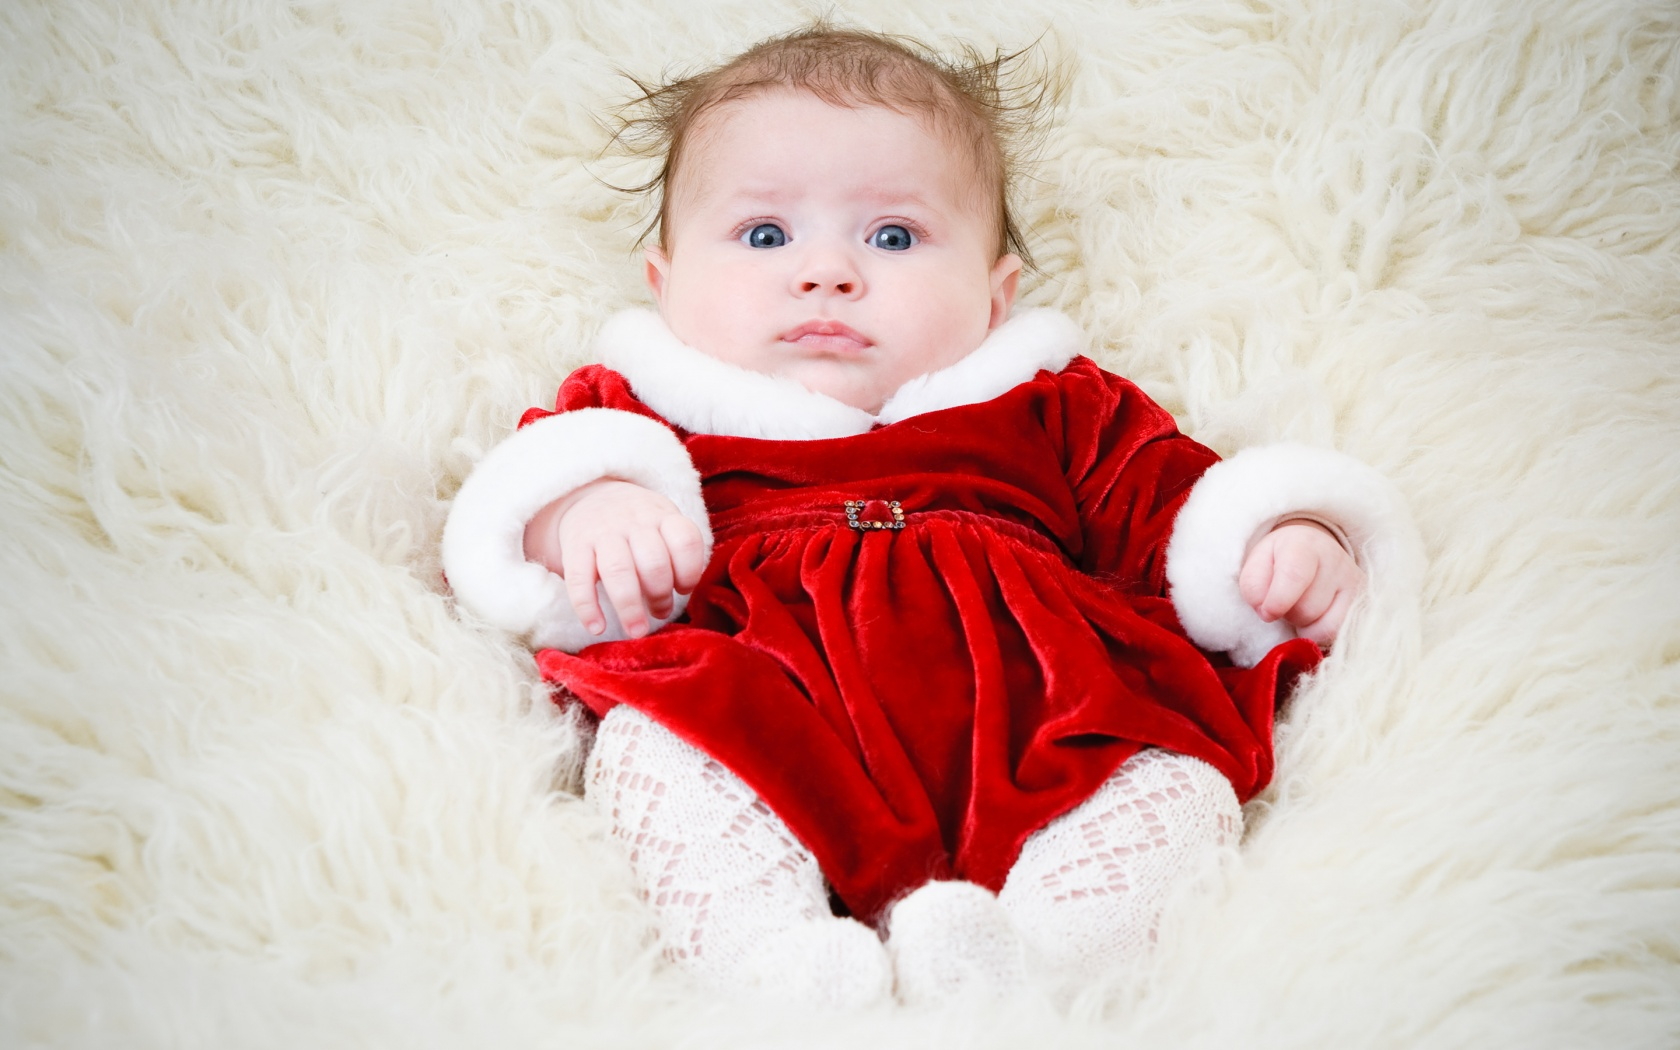 Adorable Cute Baby Girl Wallpapers In Jpg Format For Free Download